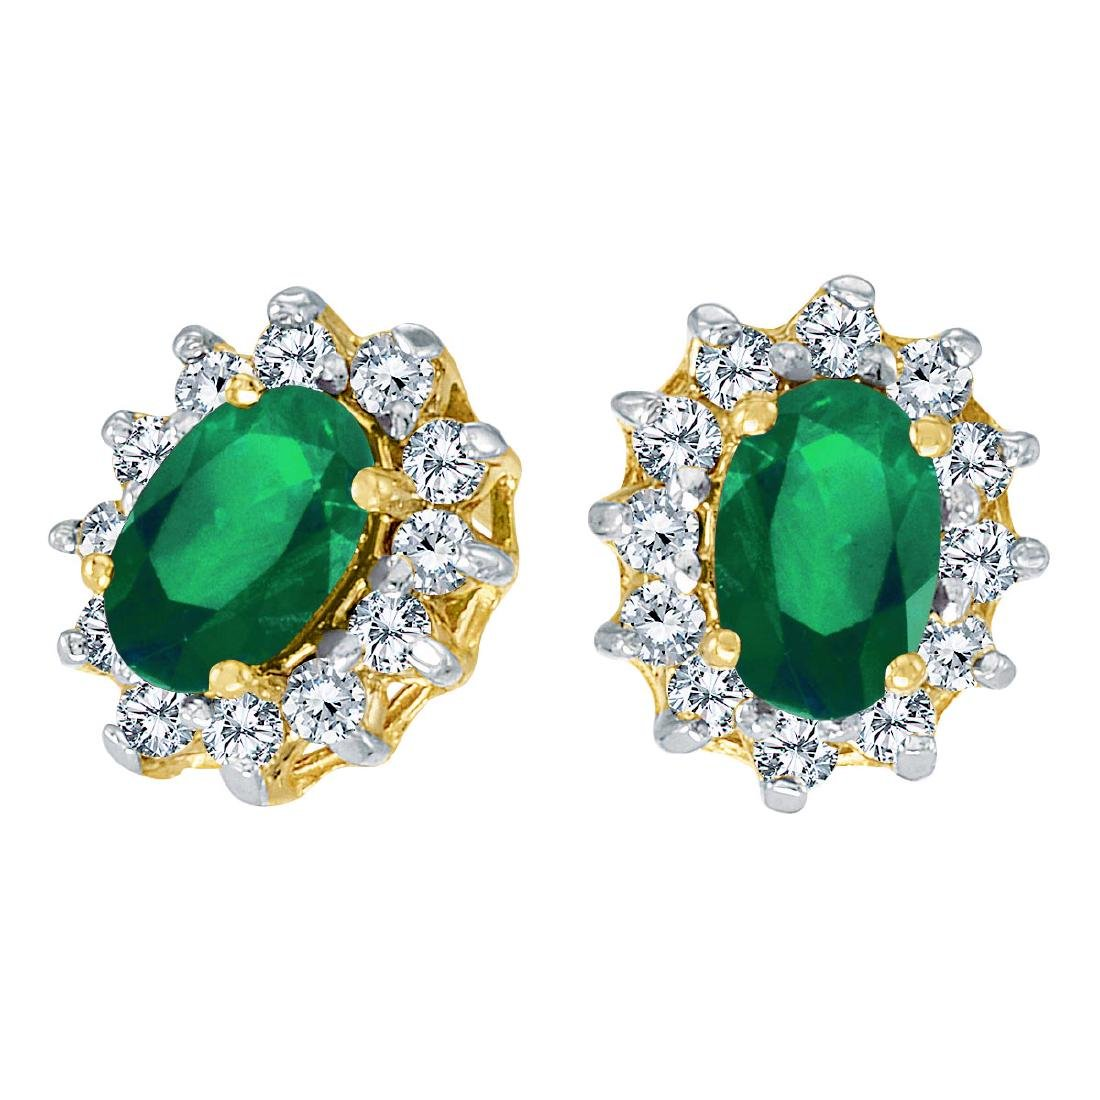 Certified 14k Yellow Gold Oval Emerald and .25 total ct